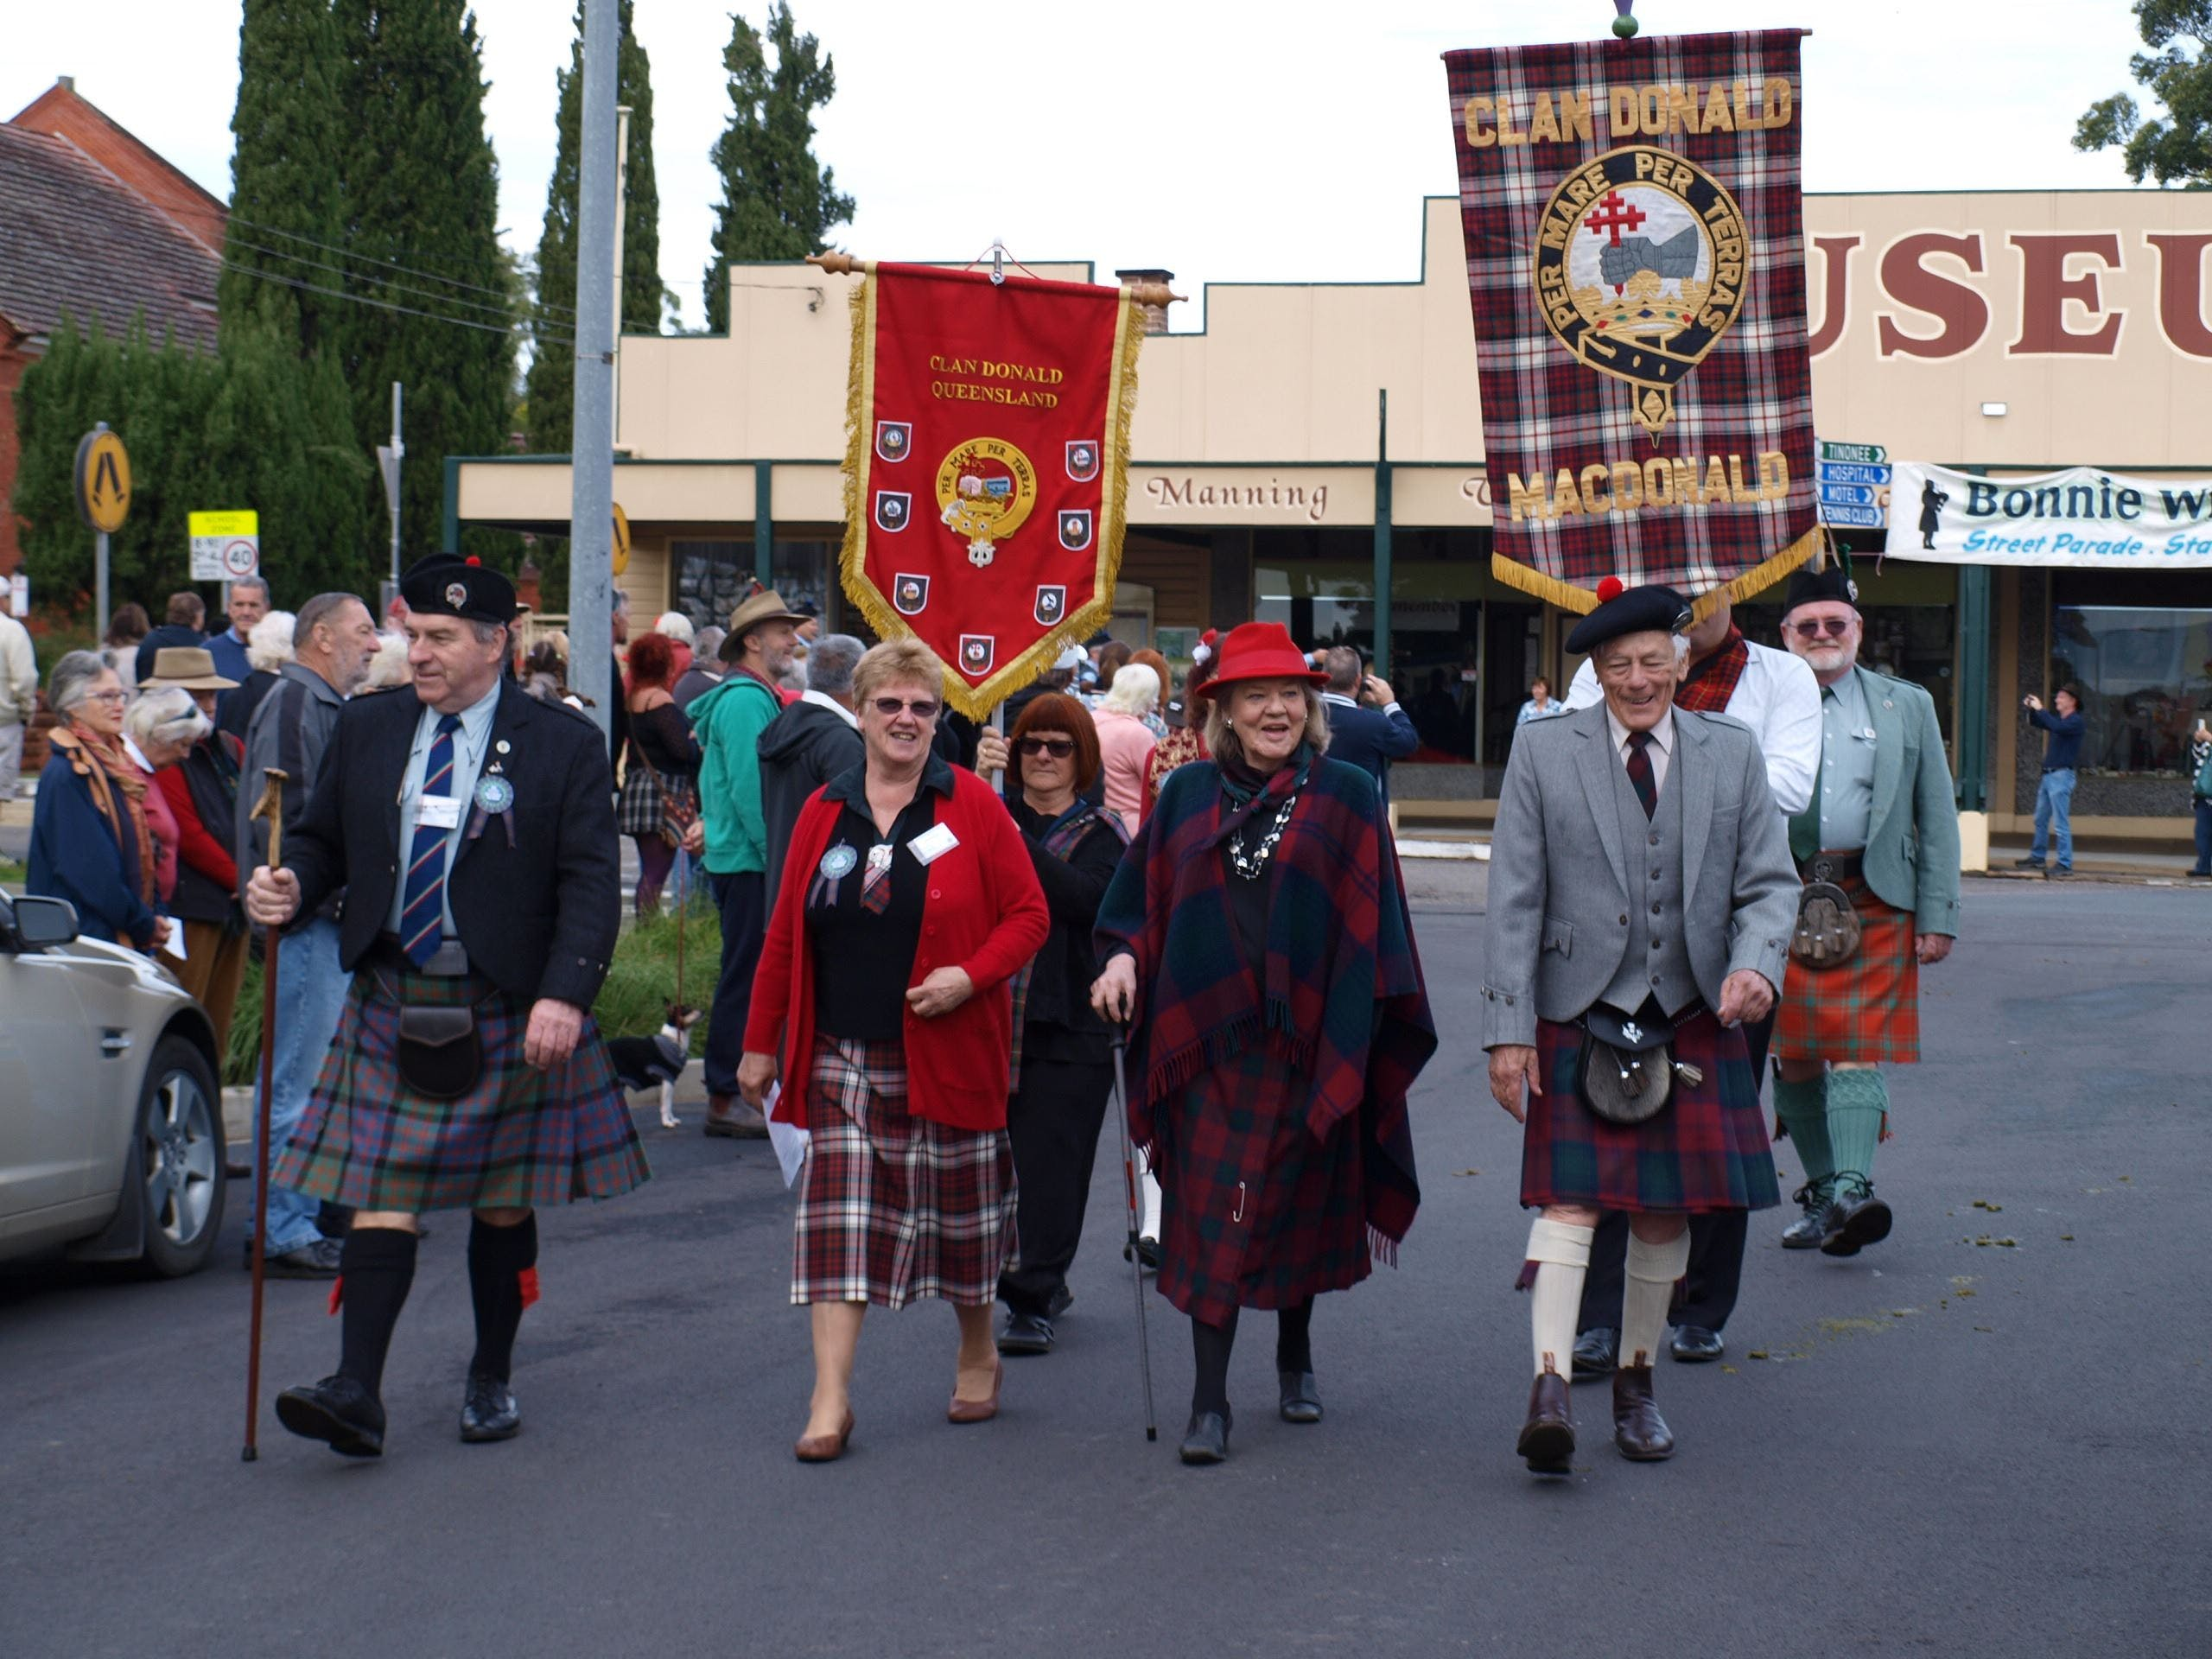 Bonnie Wingham Scottish Festival - Sydney Tourism